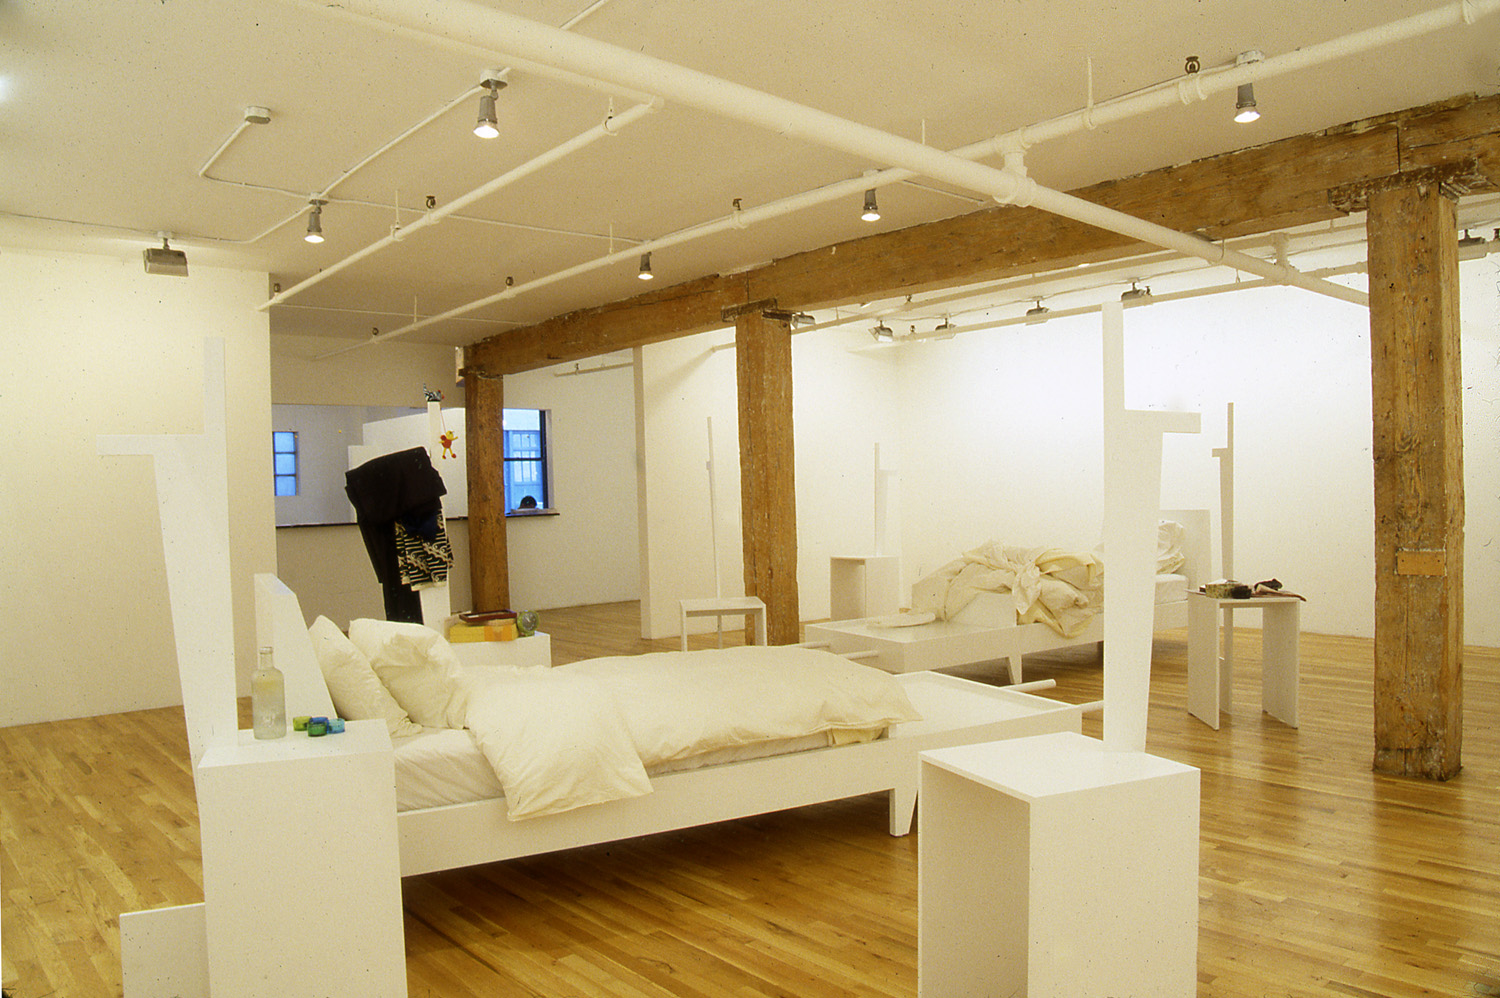 Lee Mingwei   The Sleeping Project , 2000 mixed media installation installation view at Lombard Freid Gallery, NY